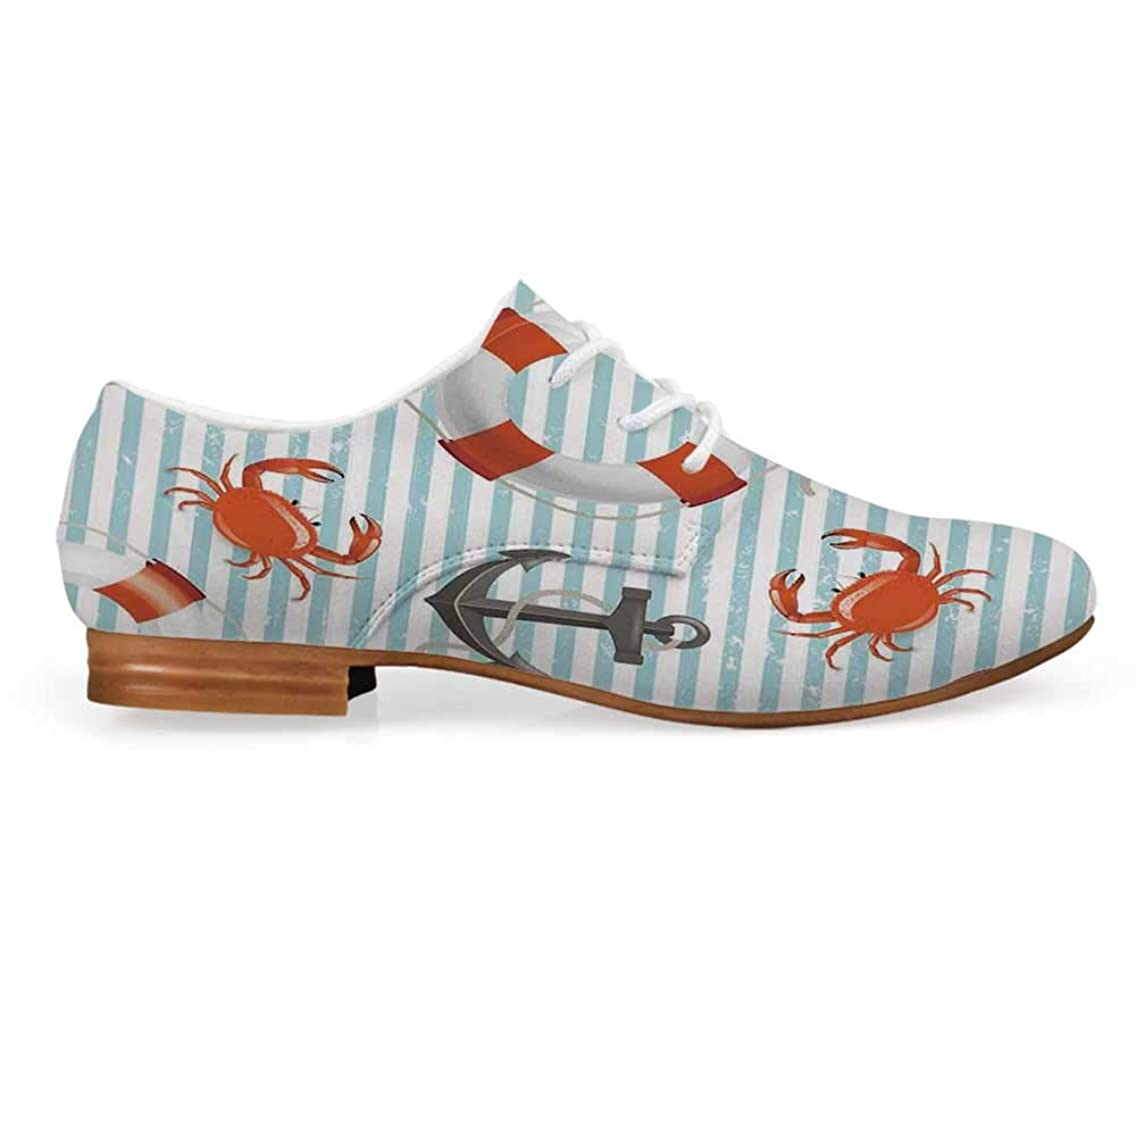 Nautical Leather Lace up Oxfords Shoes,Life Rings Anchor and Ropes Ocean Crabs Coastal Theme Teal Striped Print Bootie for Girls ladis Womens ehuzbdm90